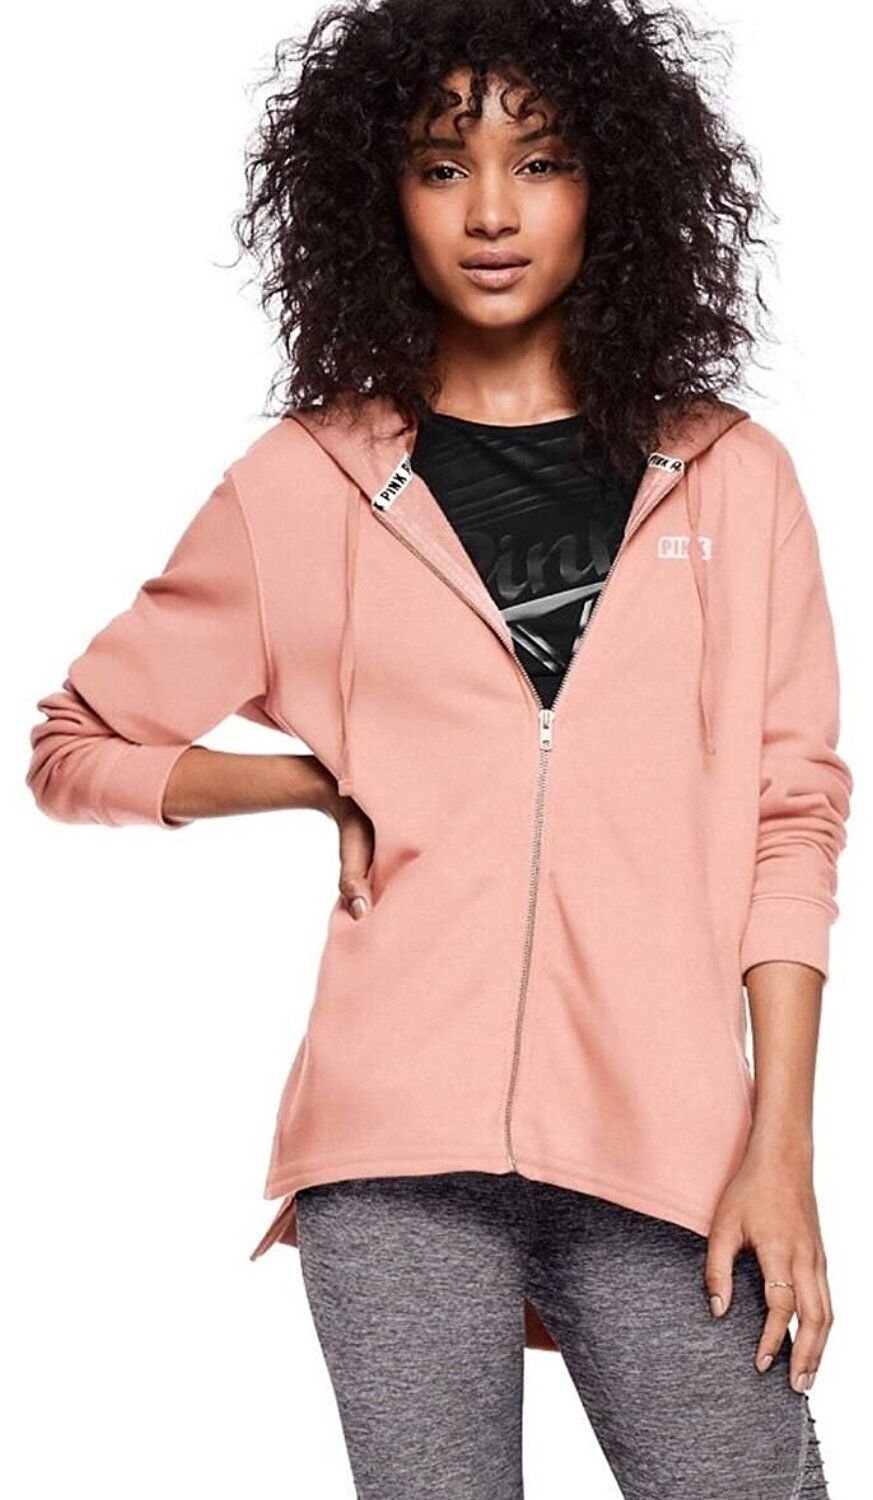 VICTORIA'S SECRET Pink NEW SIDE SLIT FULL-ZIP Hoodie color Ballet Pink Medium